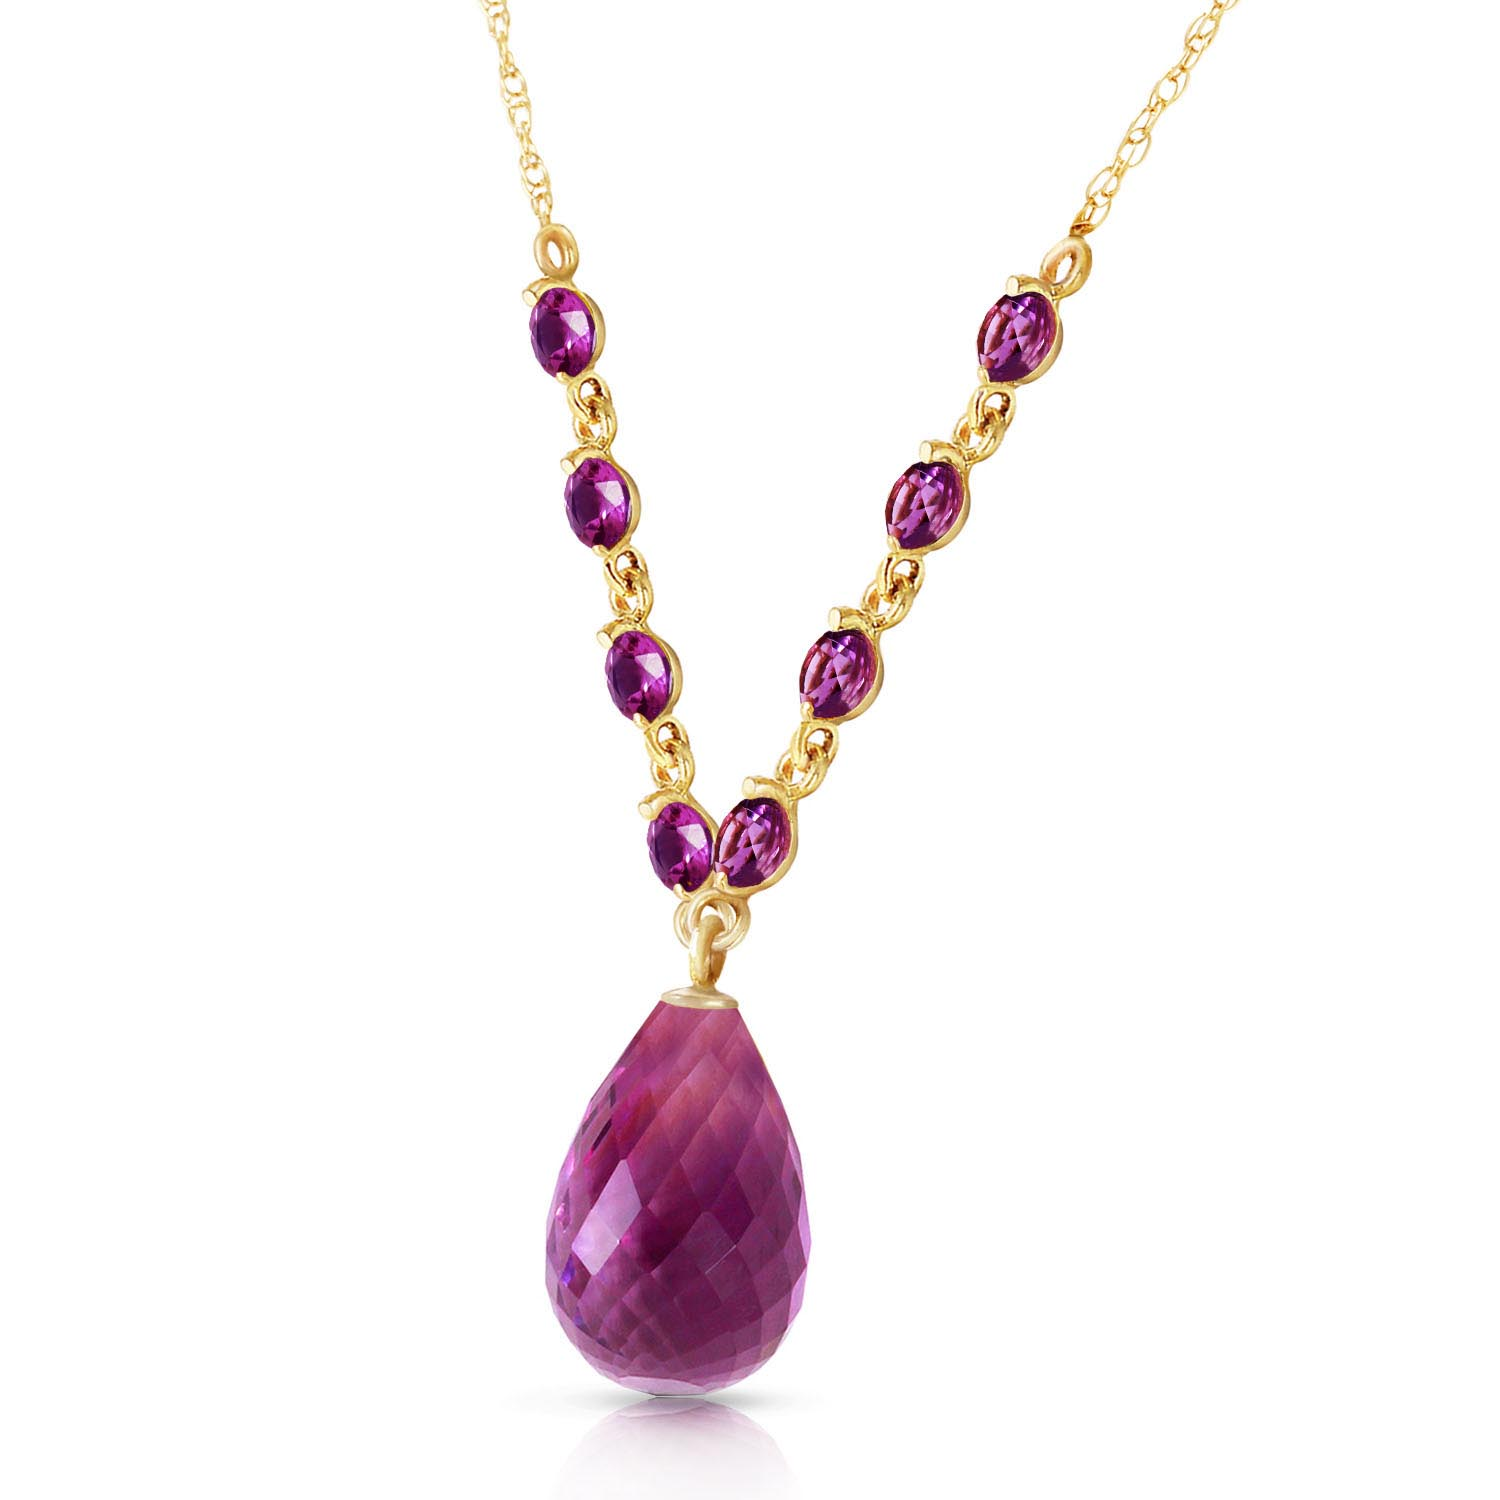 Amethyst Briolette Pendant Necklace 11.5ctw in 9ct Gold